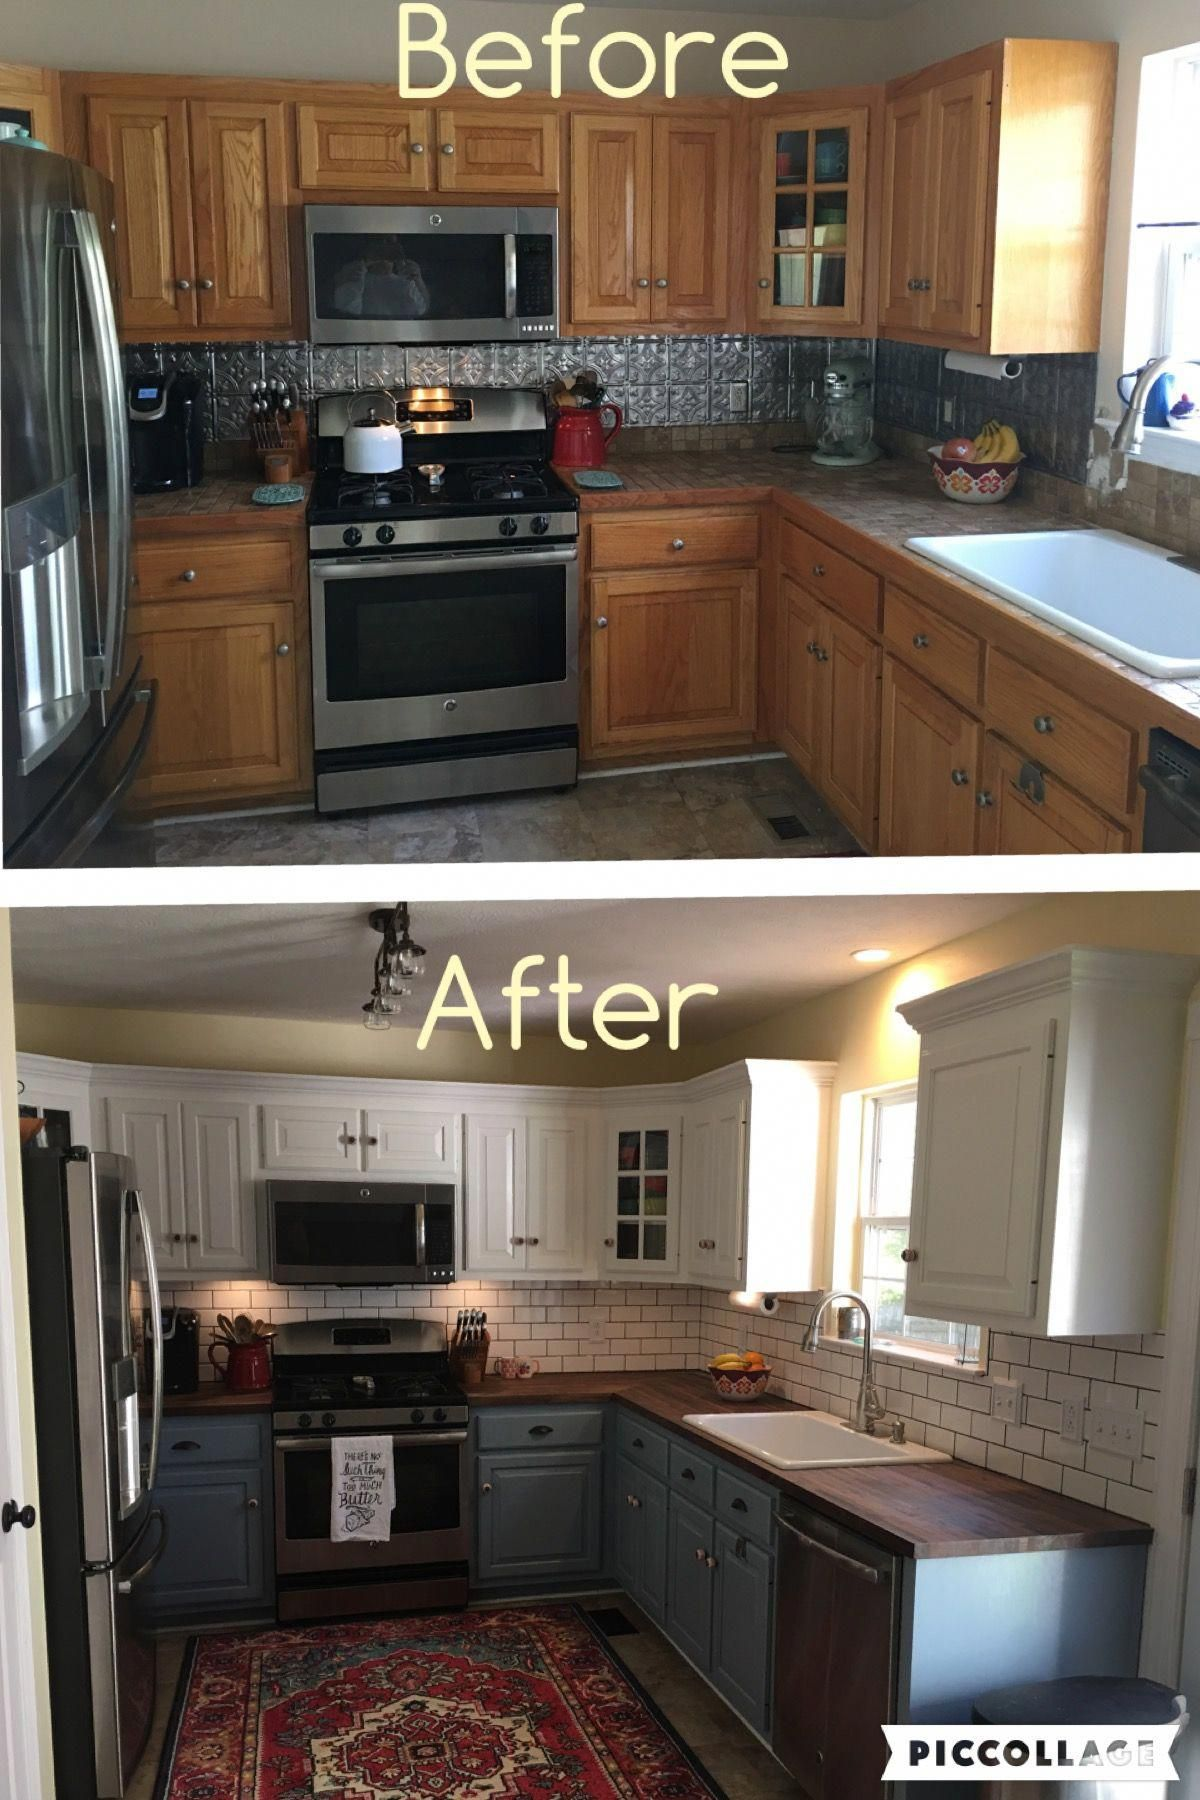 Two toned cabinets Valspar Cabinet Enamel from Lowes ud Successful